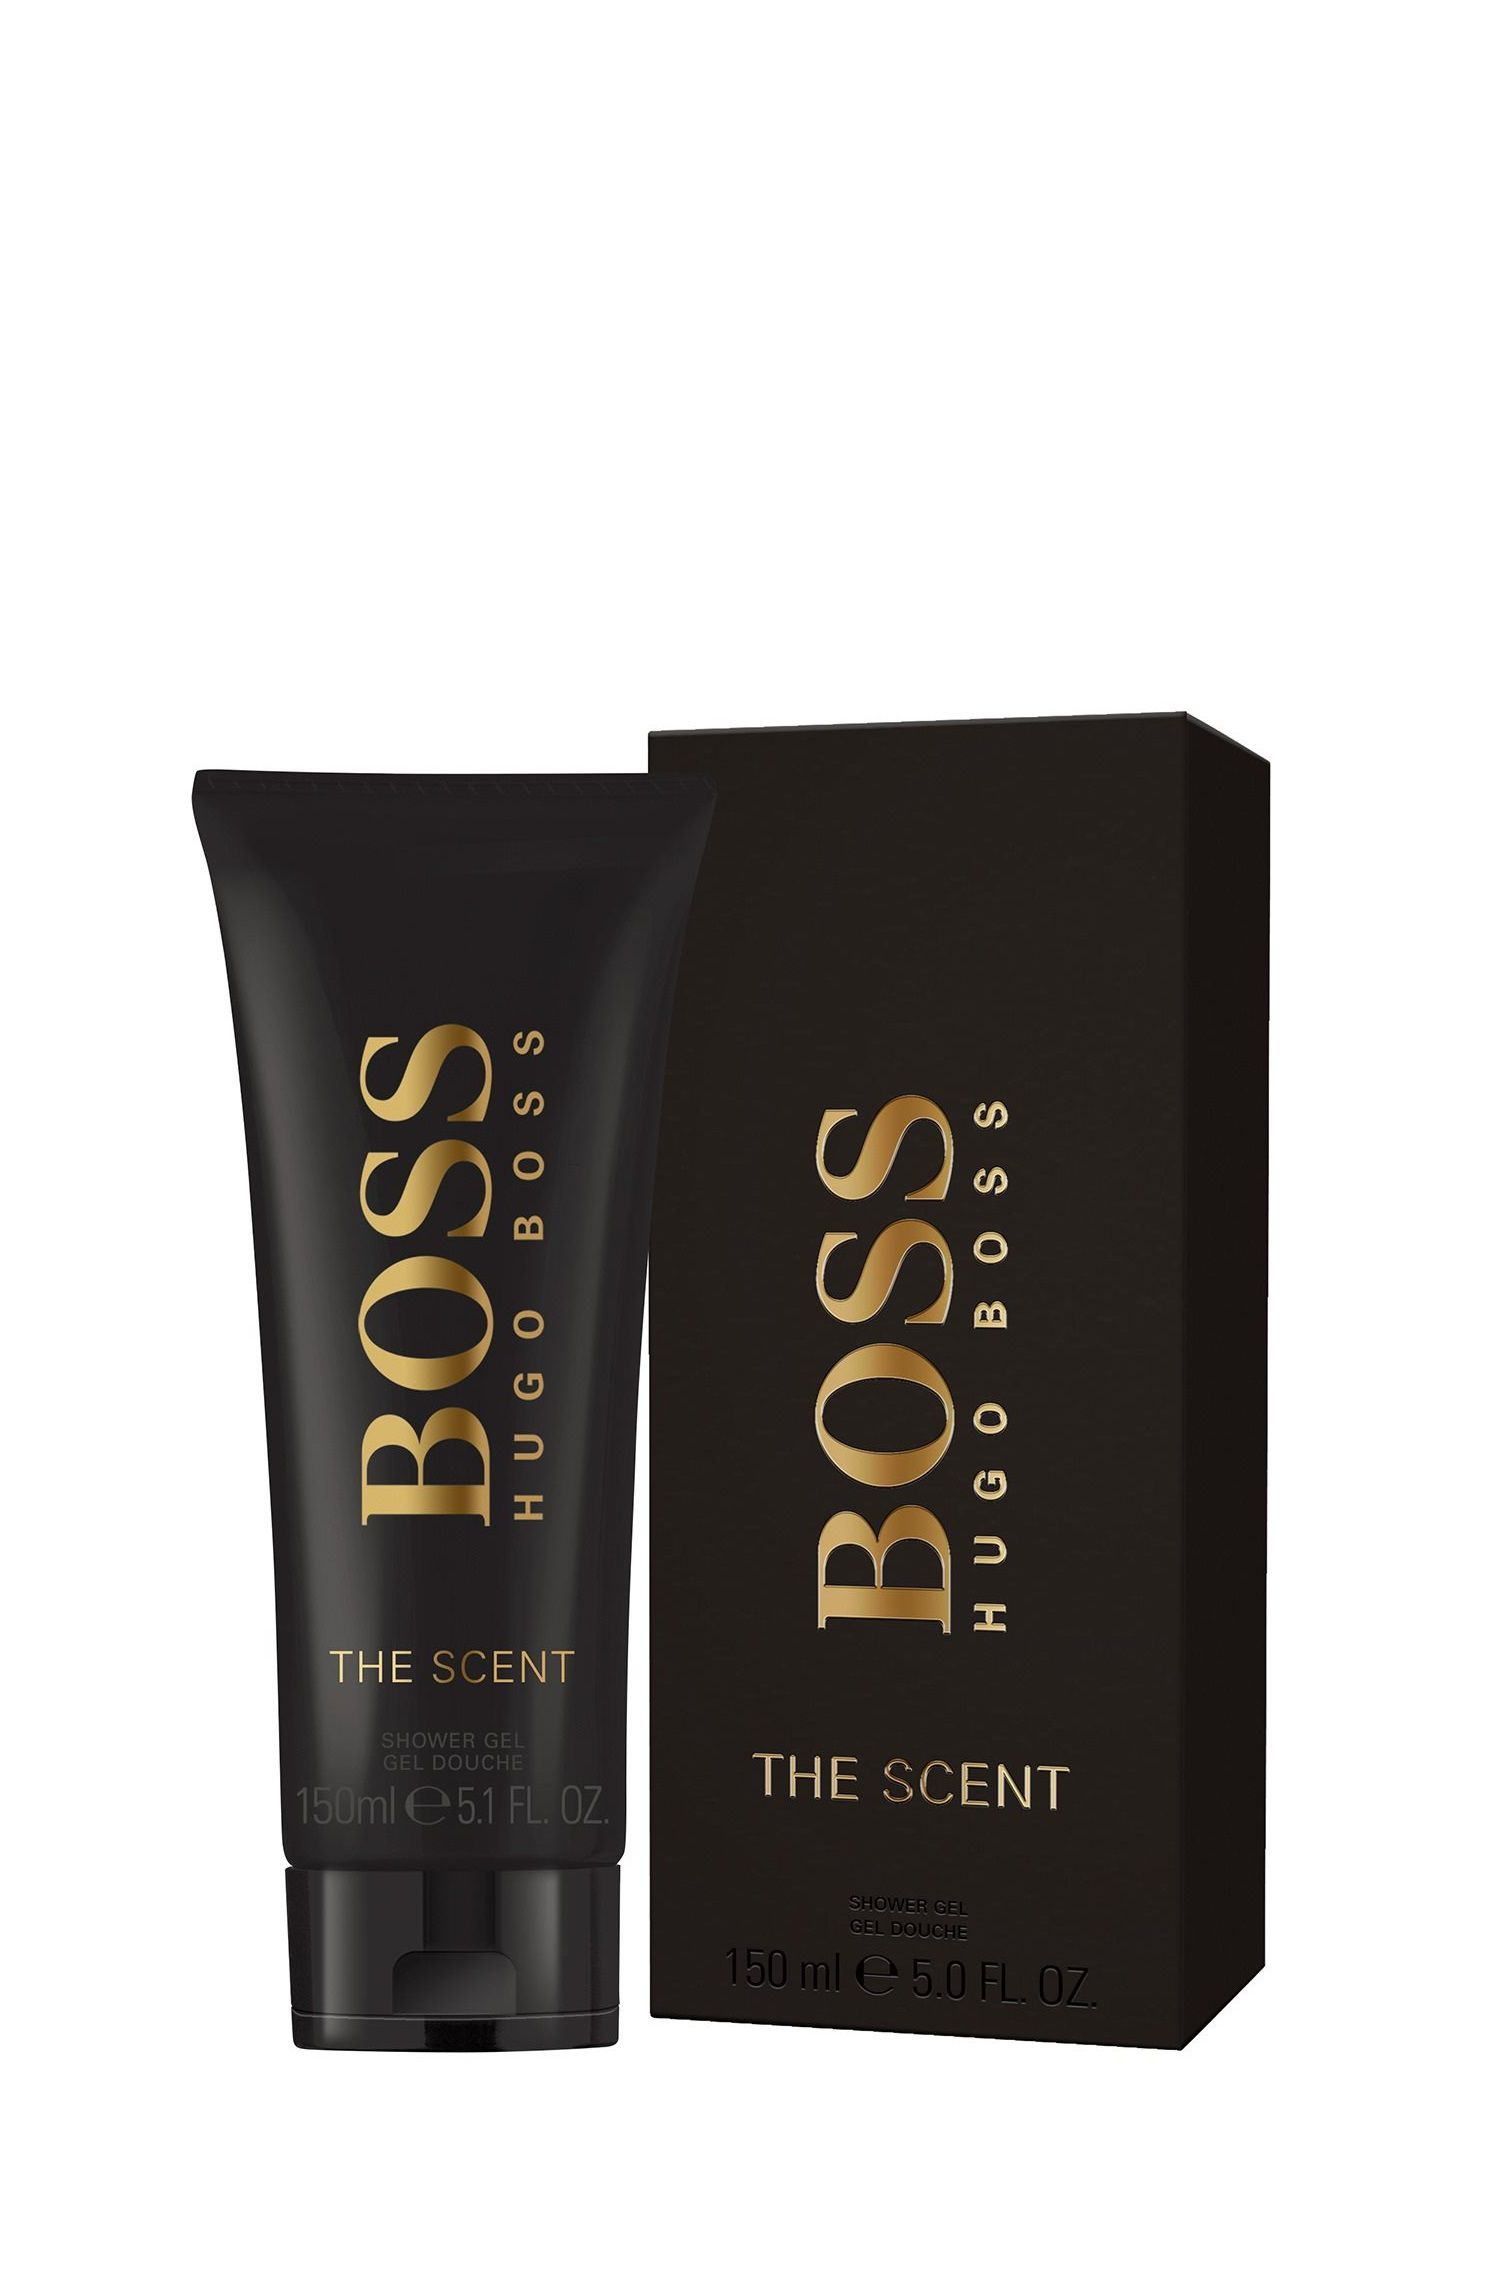 Gel de ducha BOSS The Scent 150 ml, Assorted-Pre-Pack